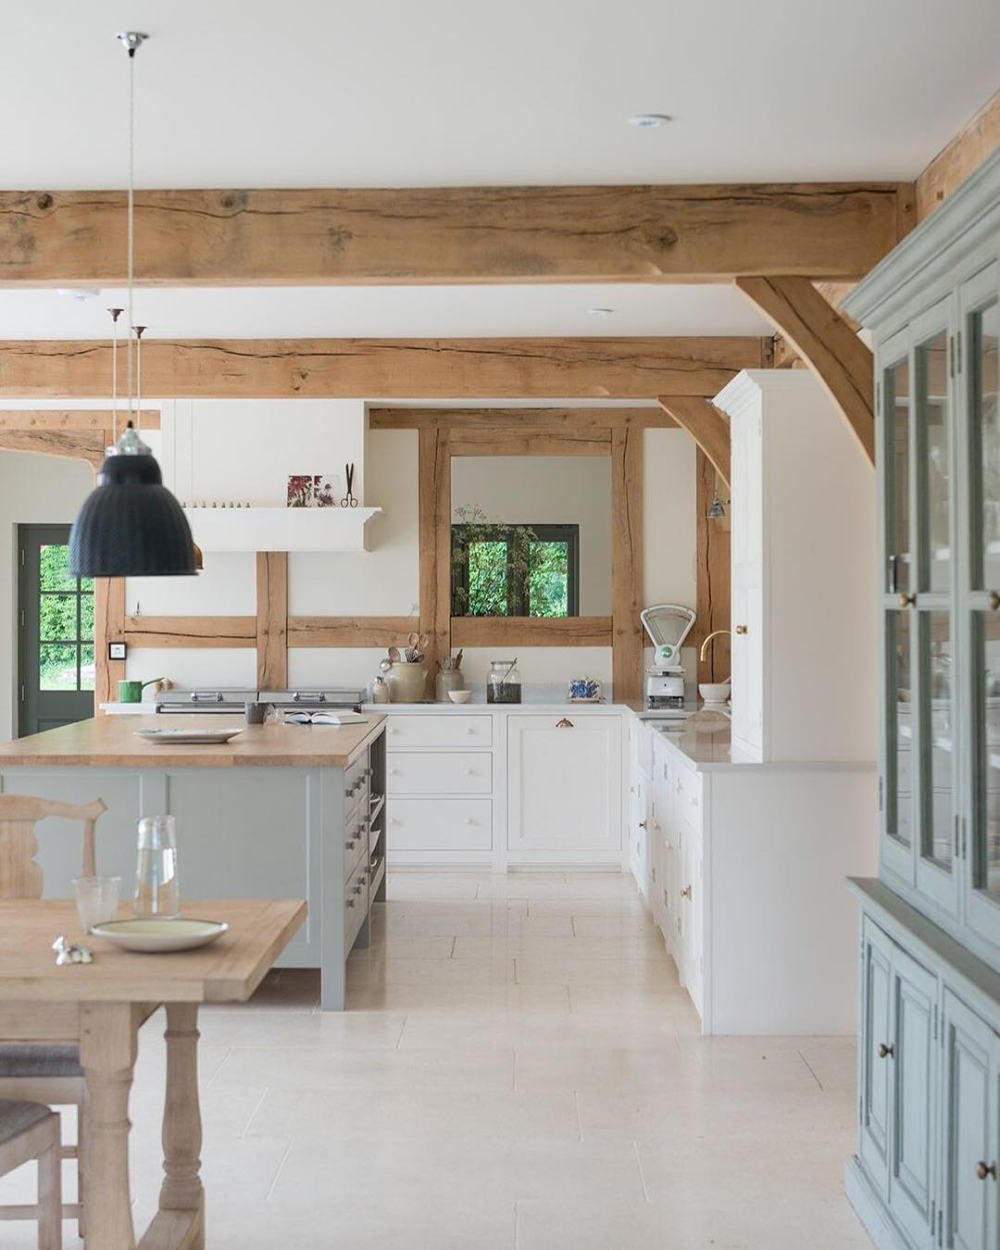 How to get a 'British Country Kitchen' (Even if you Don't Live in the Country)